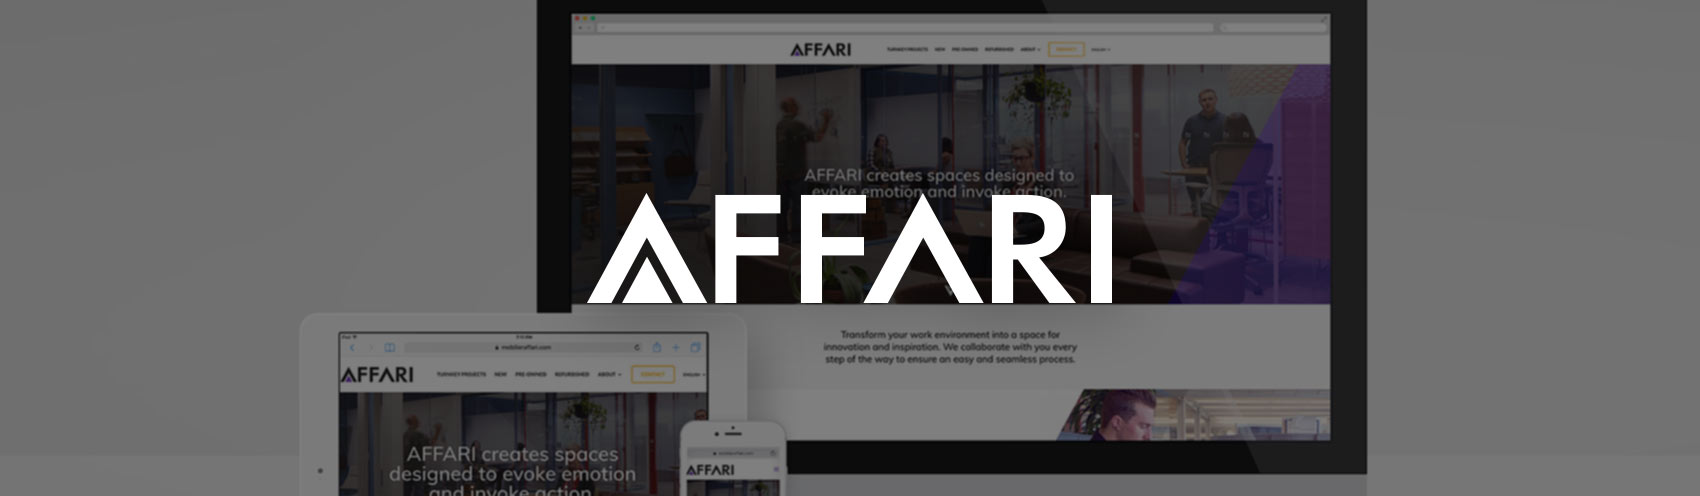 affari | 333 Photo & Design - Montreal Web Design Company l